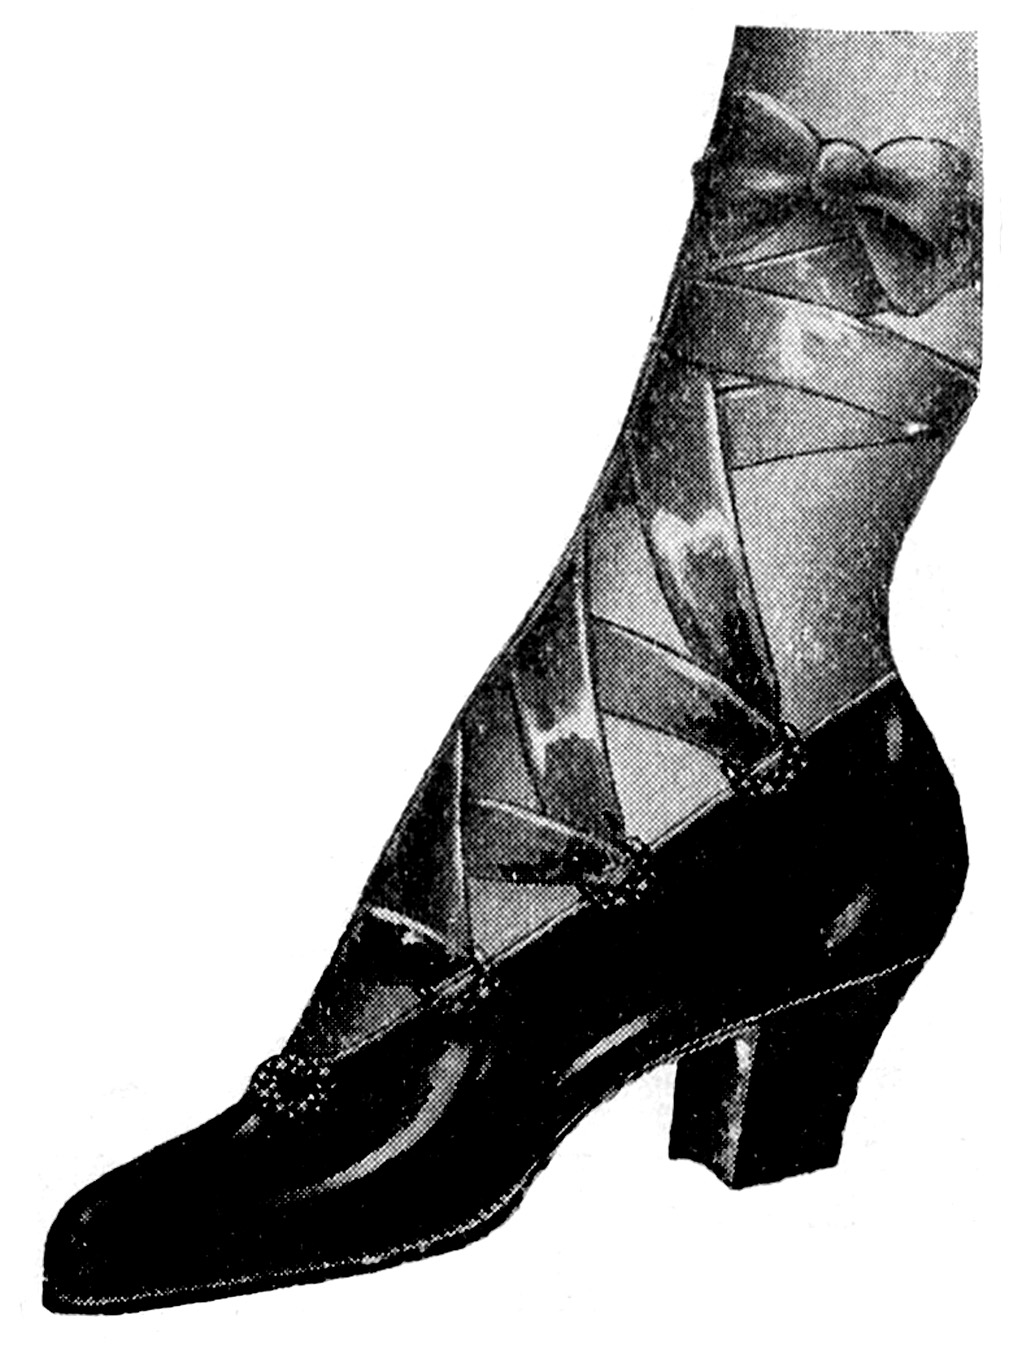 Ladies shoes clip art black and white